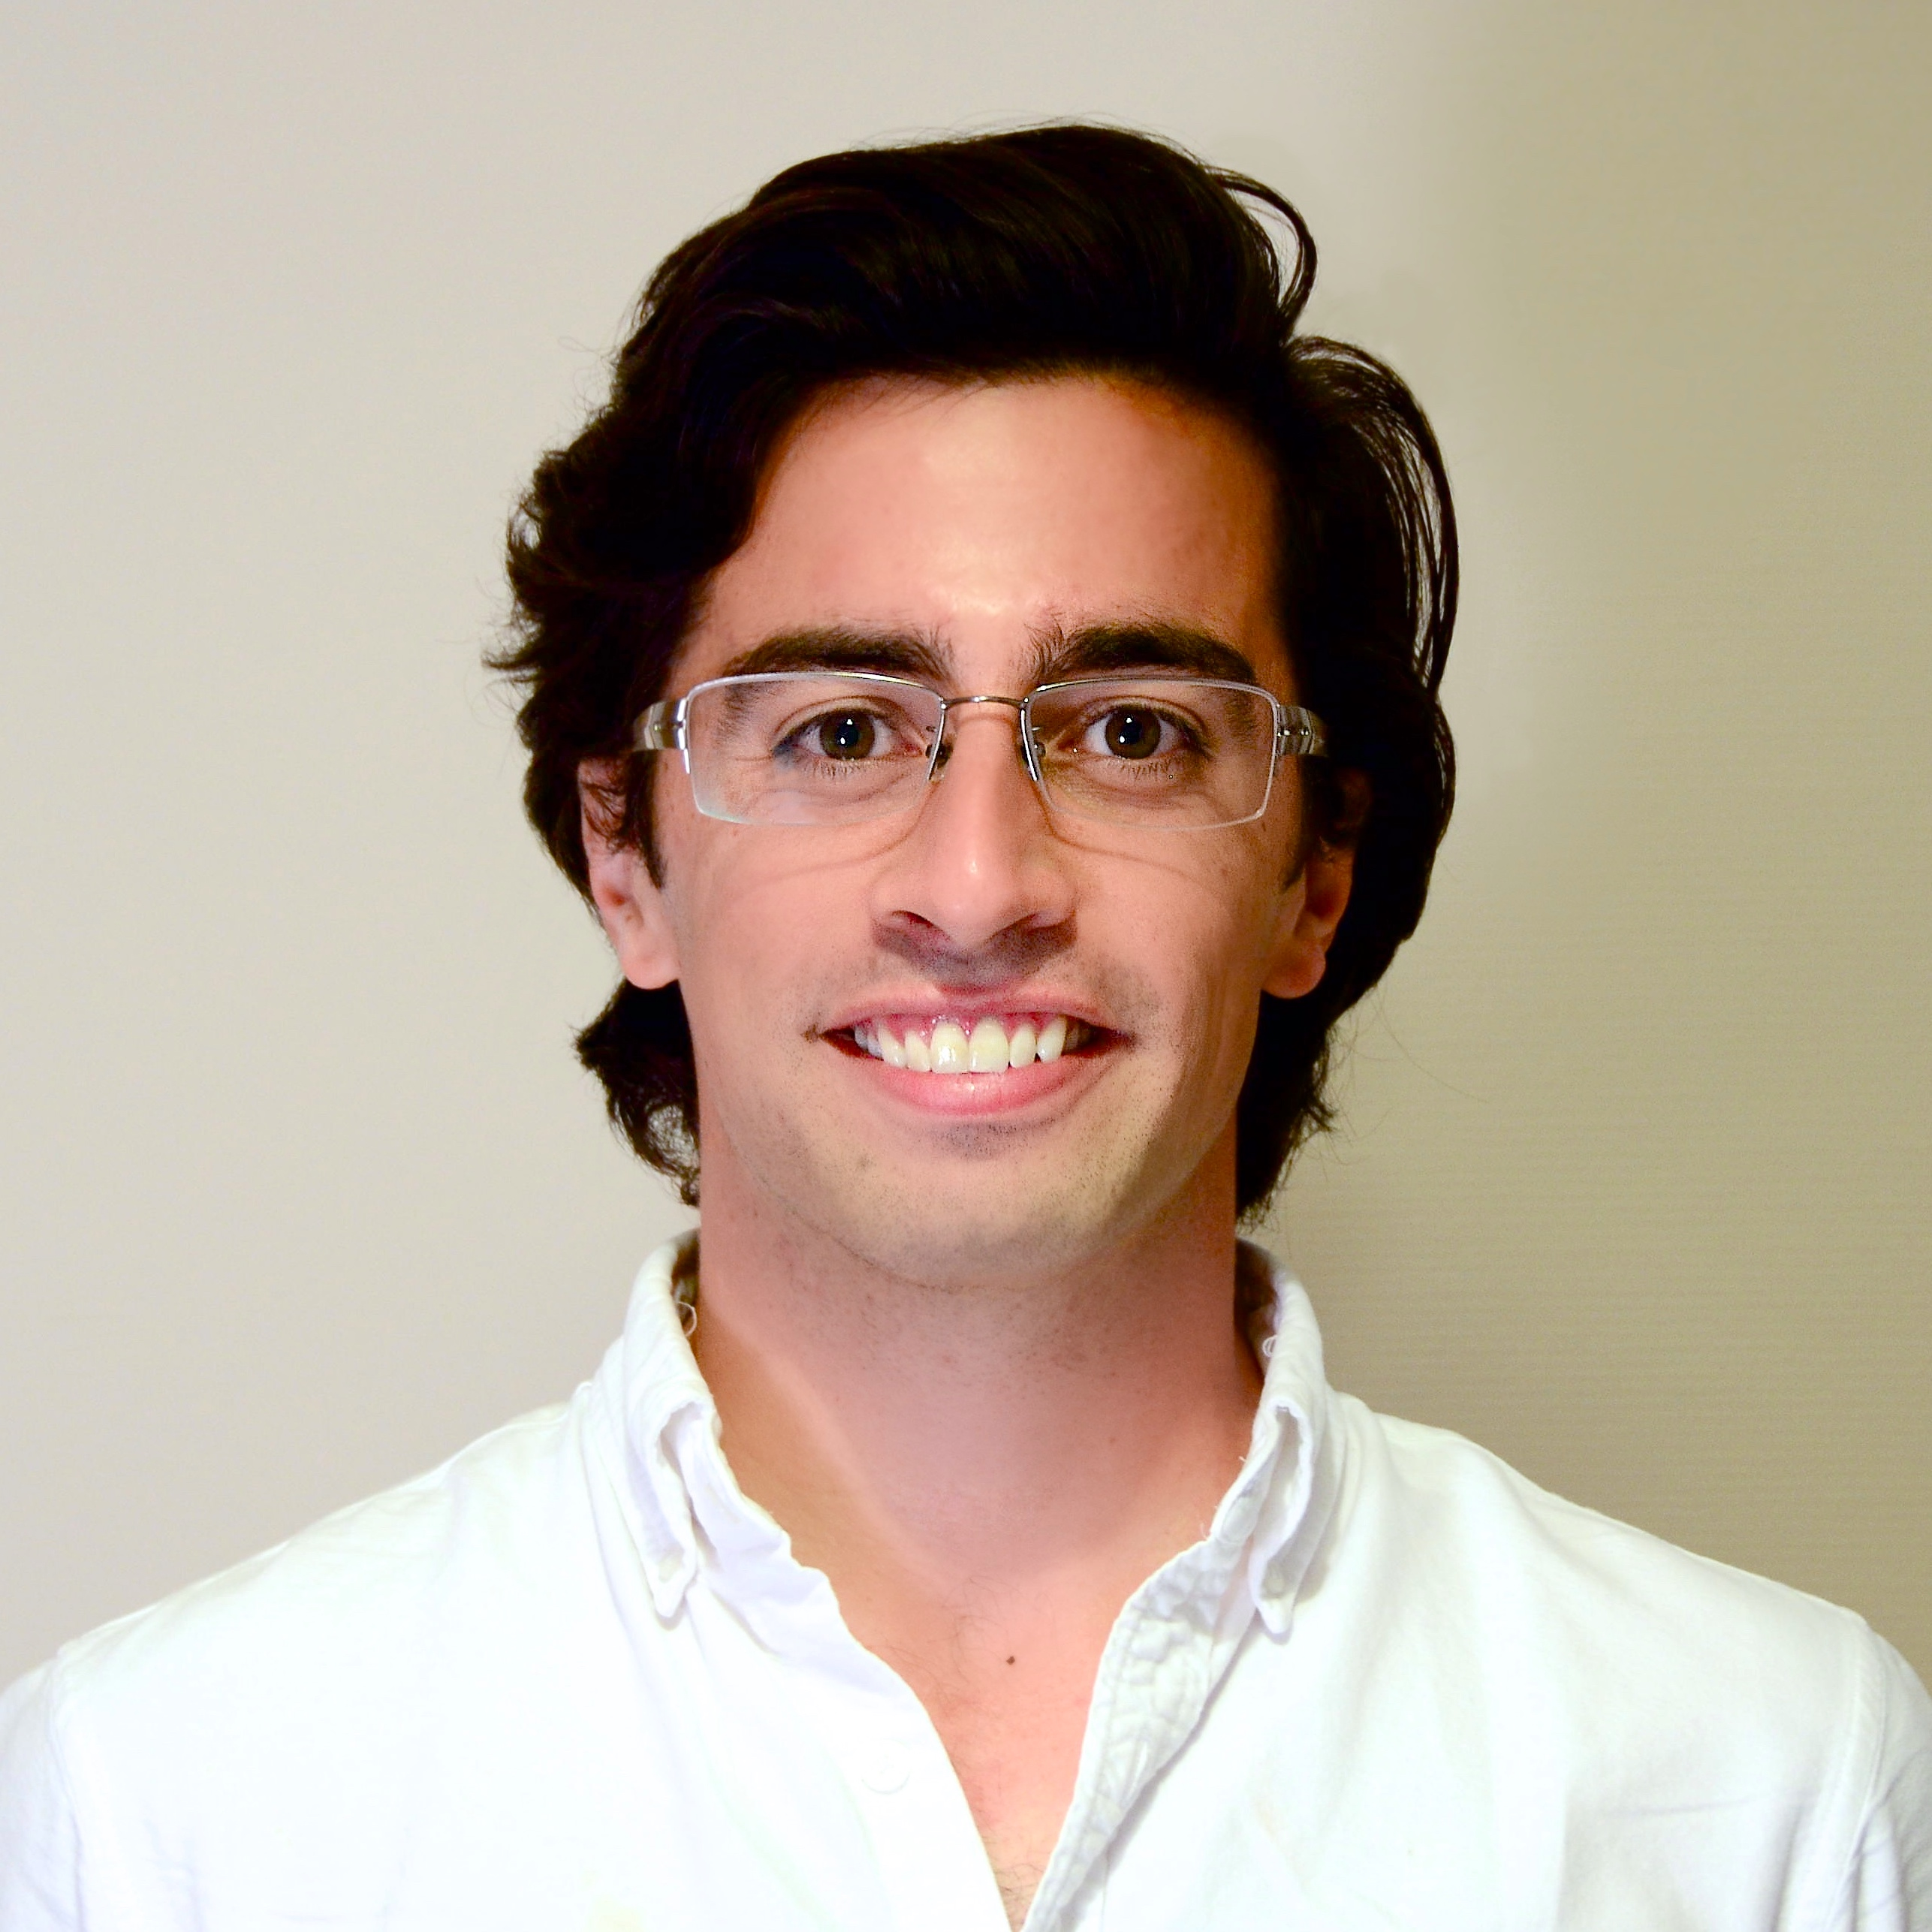 Kyle DuPont, Founder & CEO at Ohalo